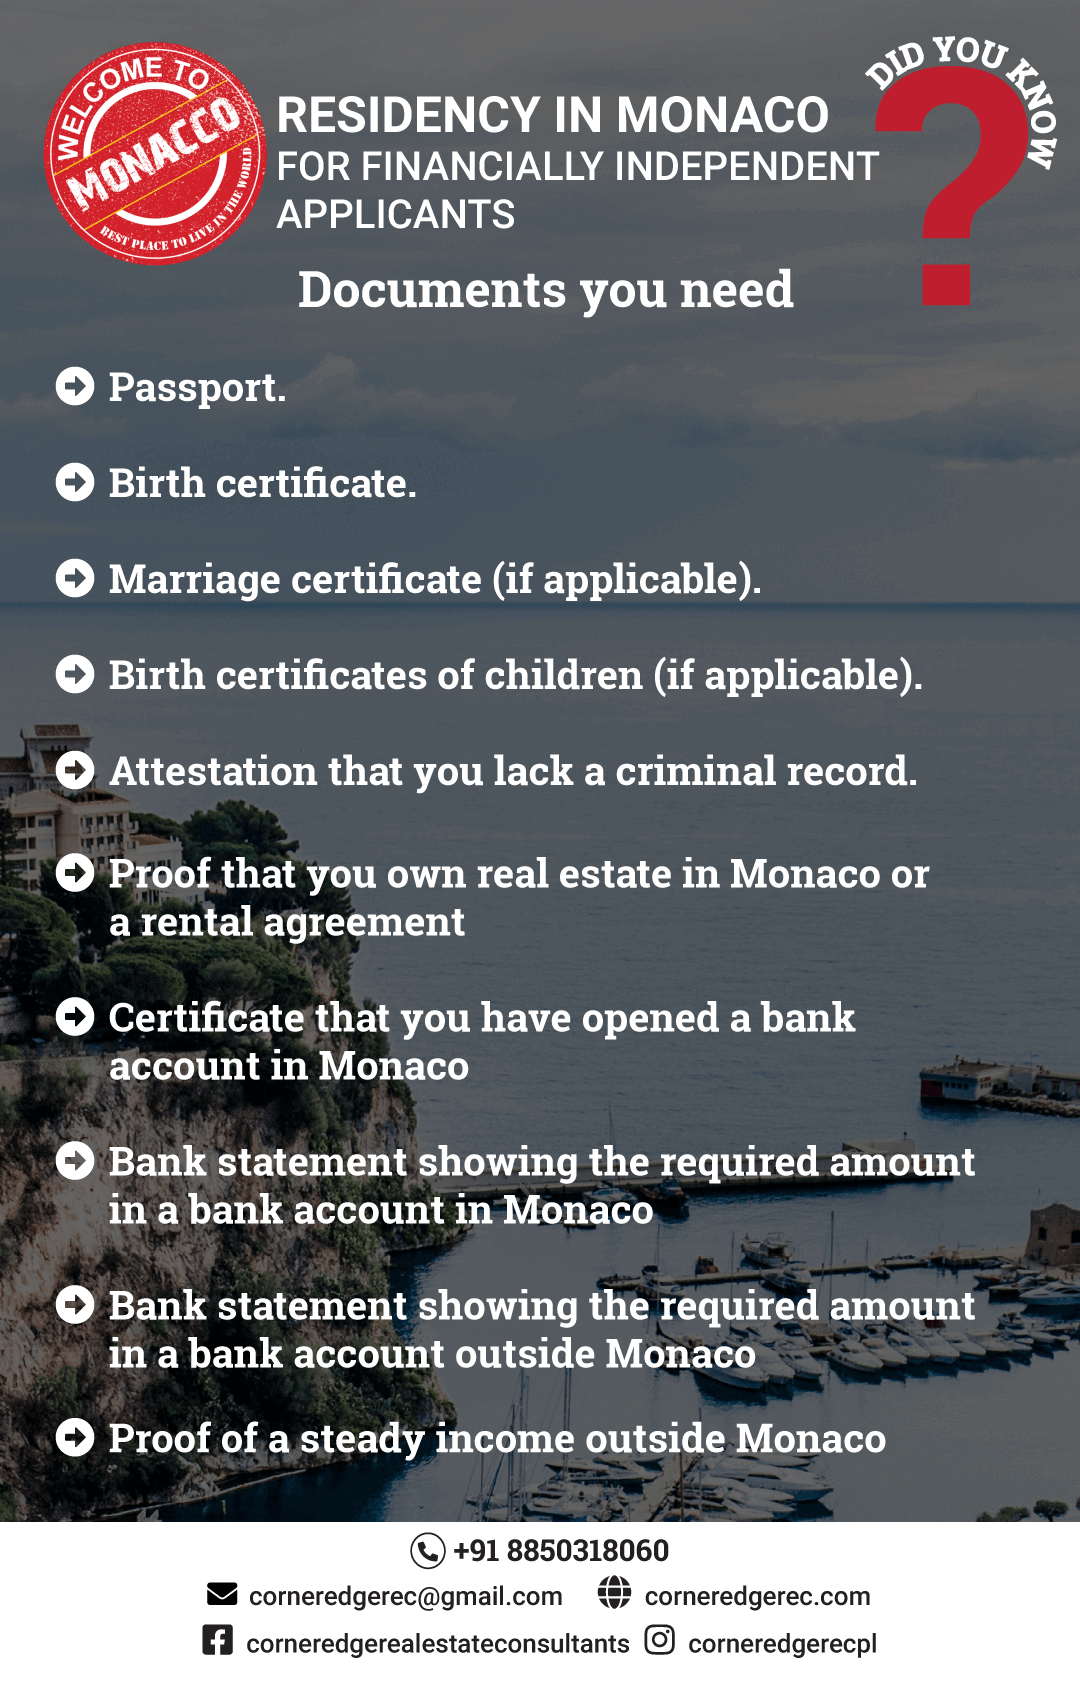 Documents for Monaco Permanent Residency for Financially Independent Applicants